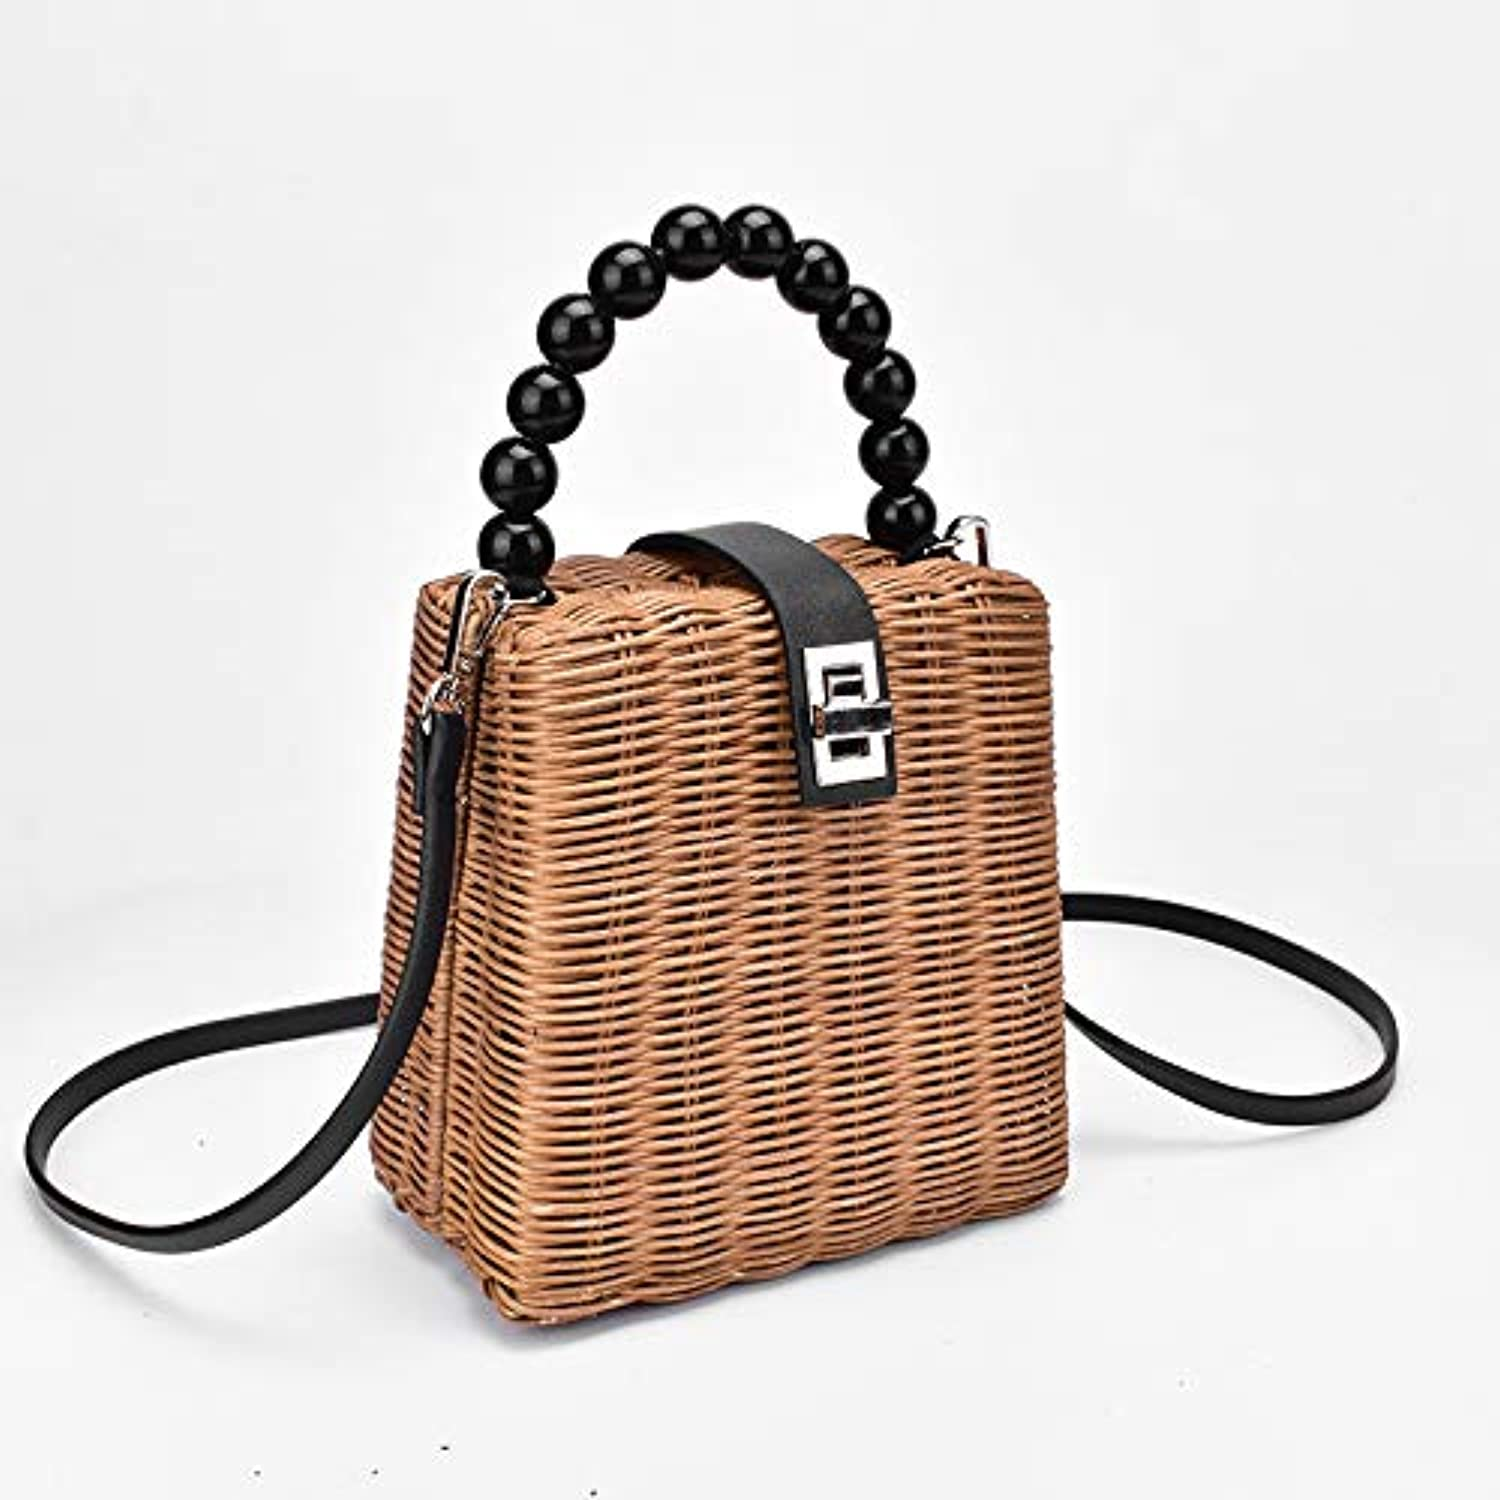 ASHIJIN Hand-Woven Straw Bag for Women Small Bags for Summer Travel Bag, Bag